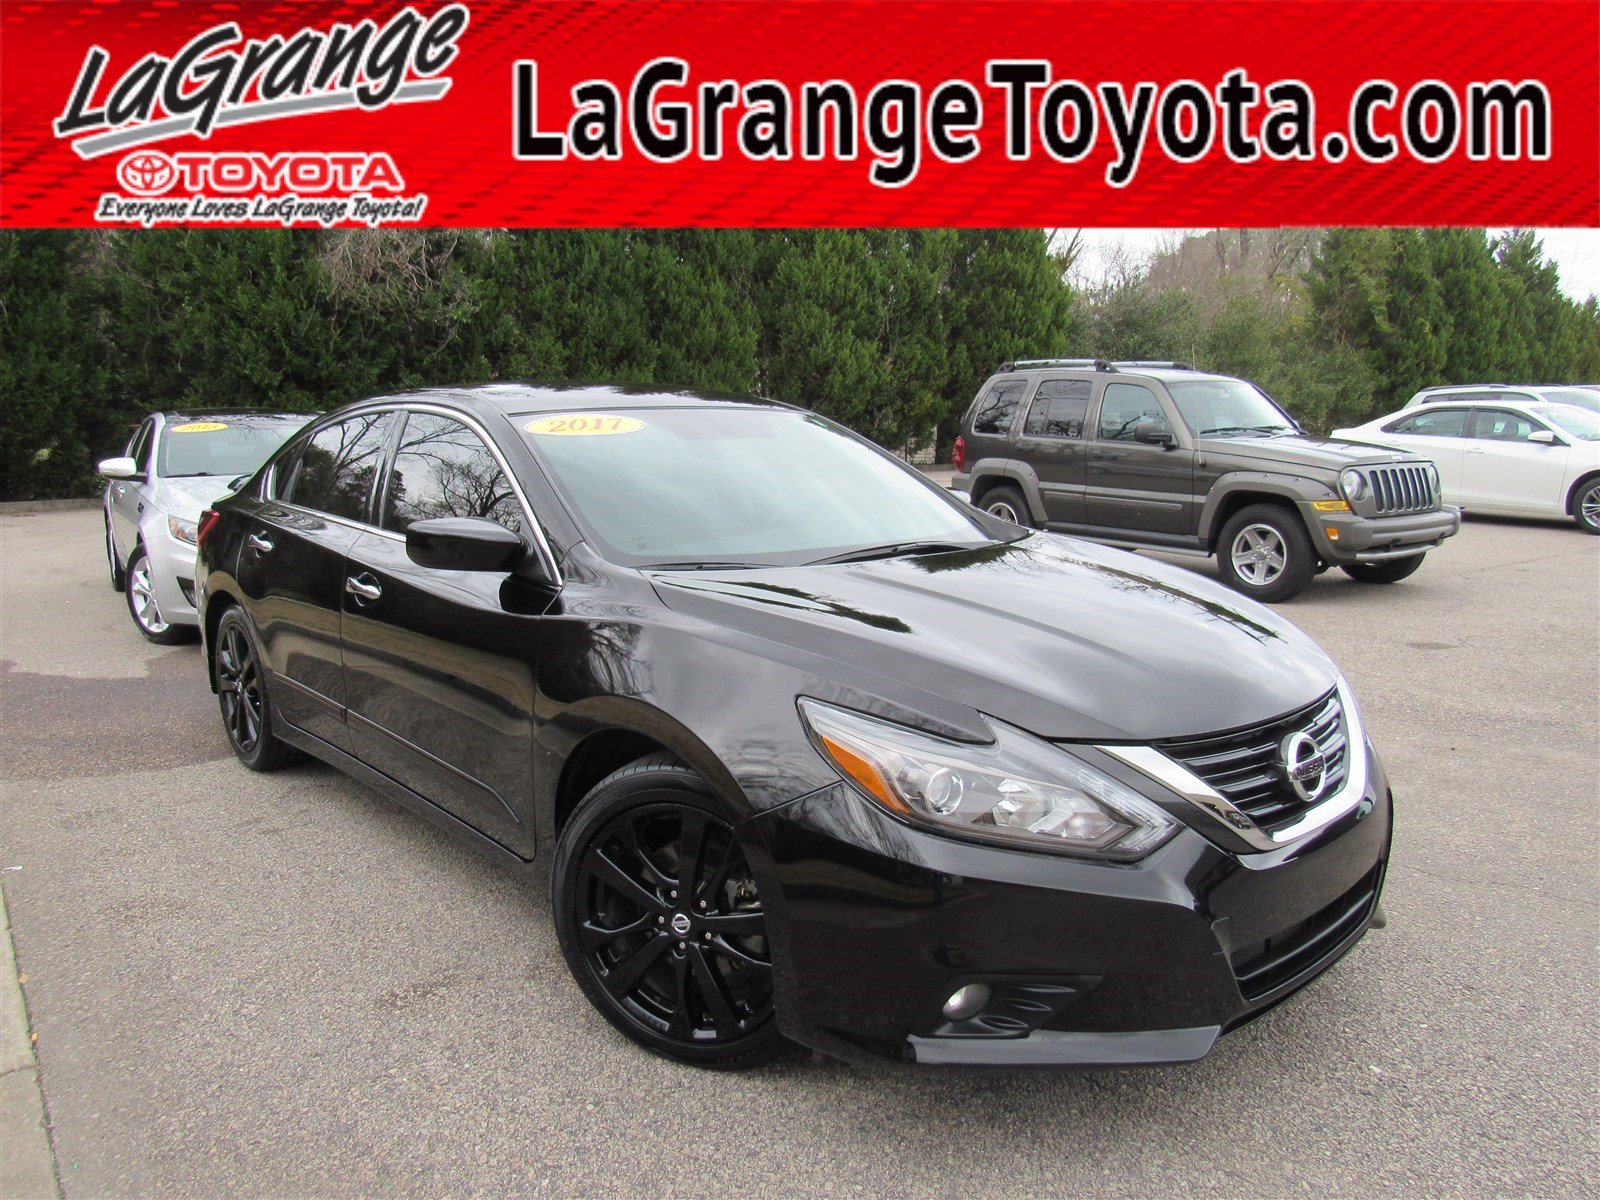 pre-owned 2017 nissan altima 2.5 sr sedan 4dr car in lagrange #p3876